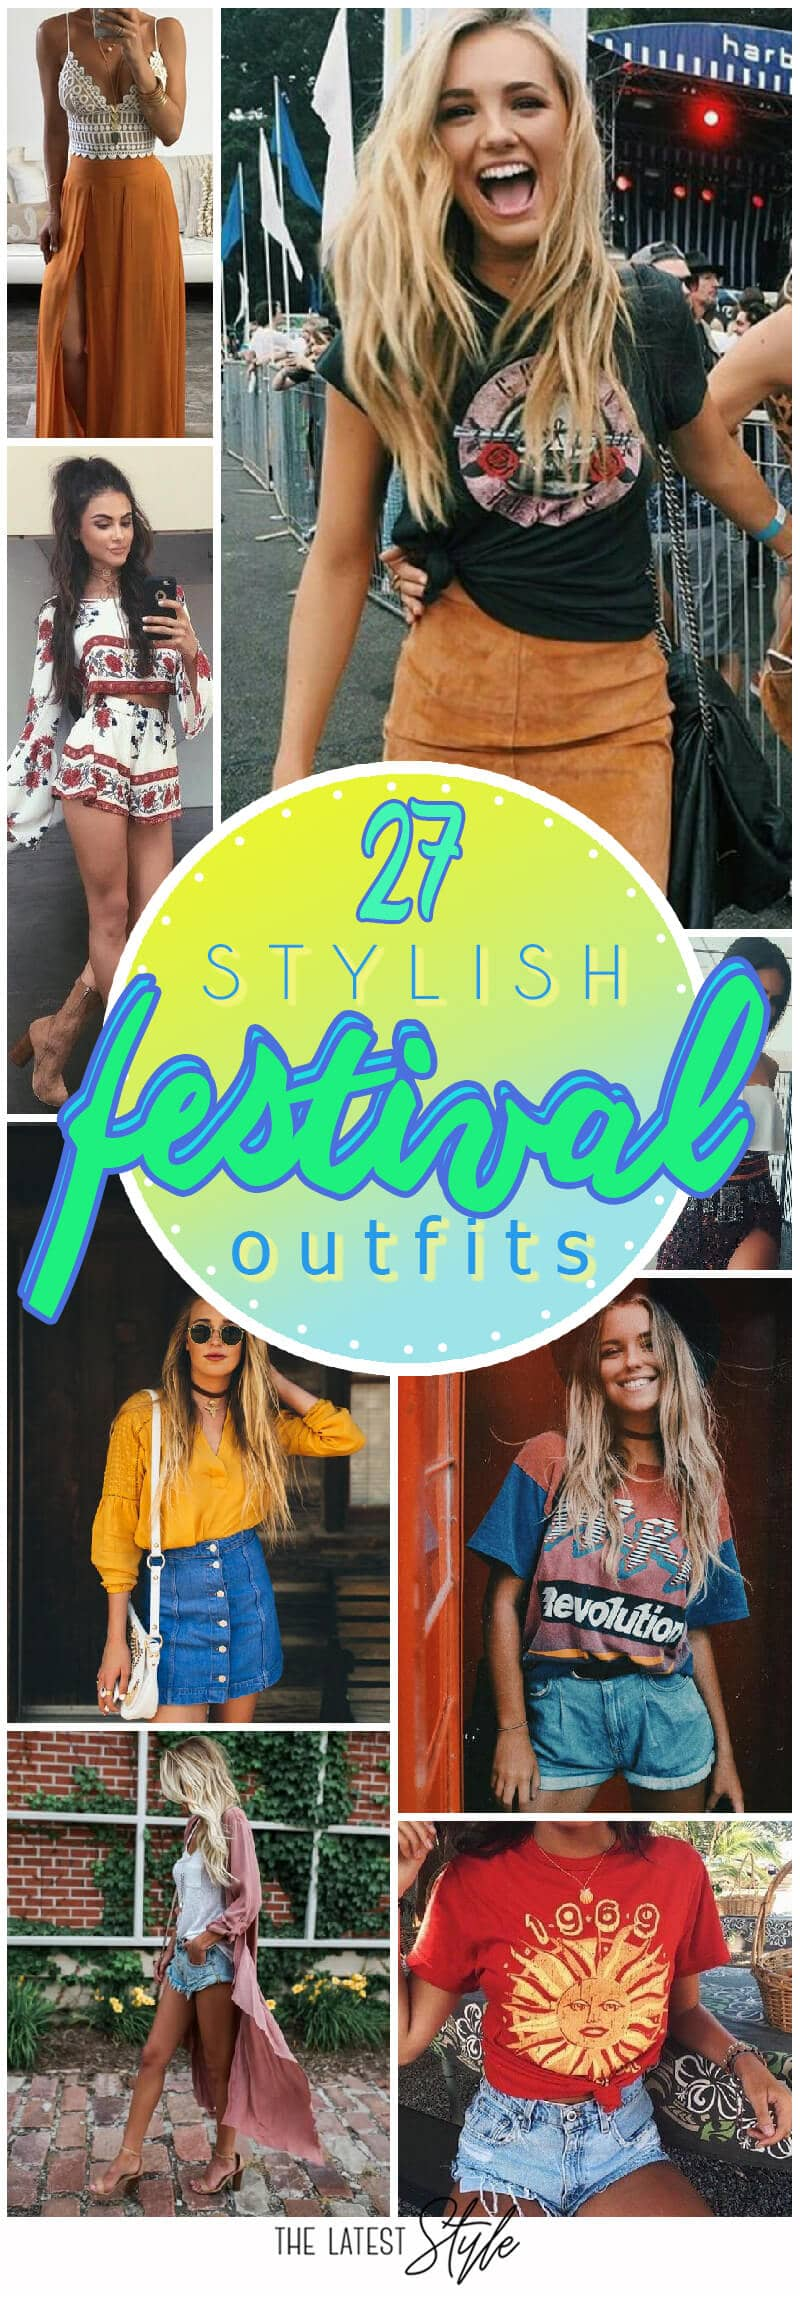 27 Stylish Festival Outfits For This Summer